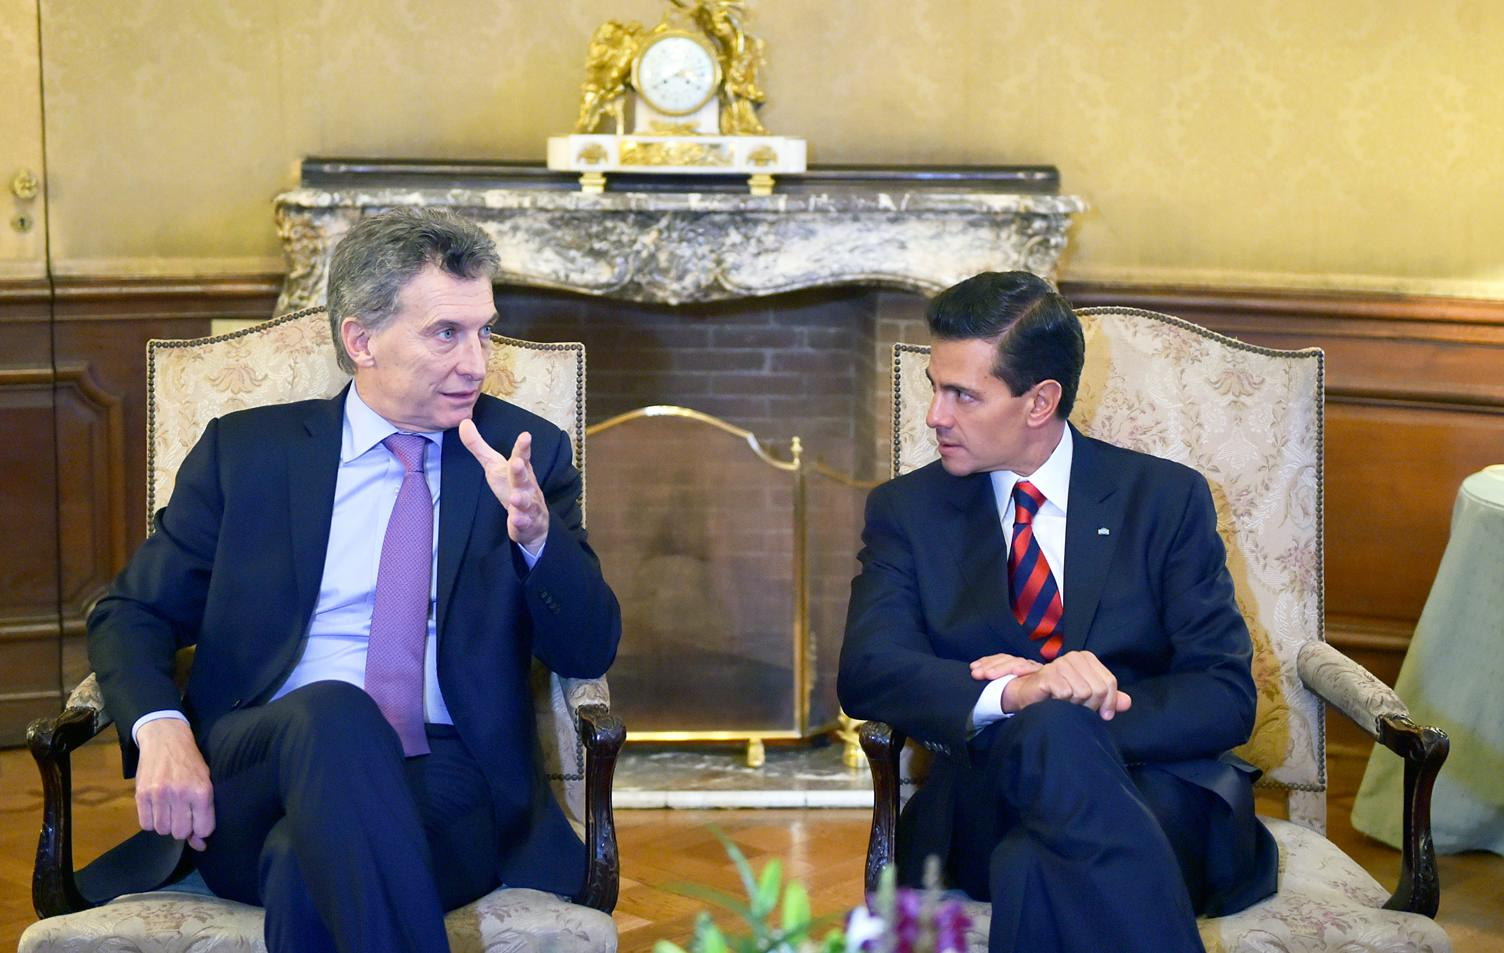 """President Peña Nieto said that Mexico, """"Has made structural reforms a new platform, and today the government is working to define and materialize the benefits that will derive from these reforms for our society""""."""